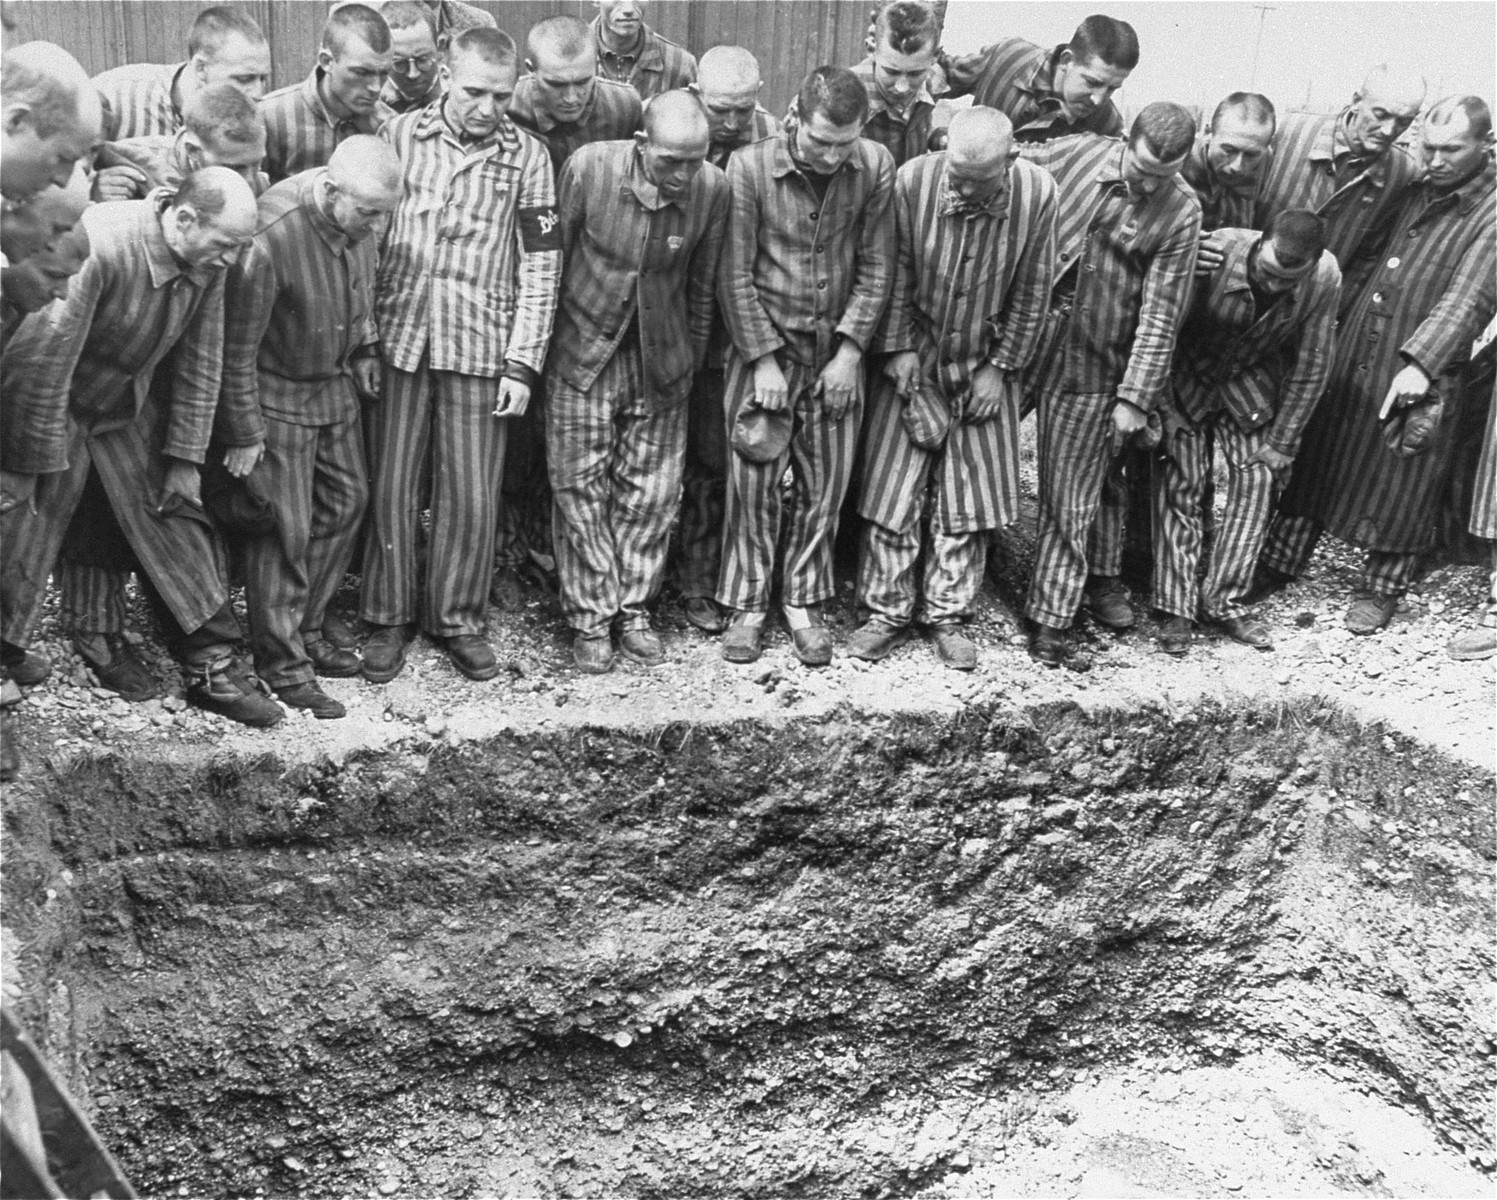 Survivors in Dachau peer into an open mass grave.